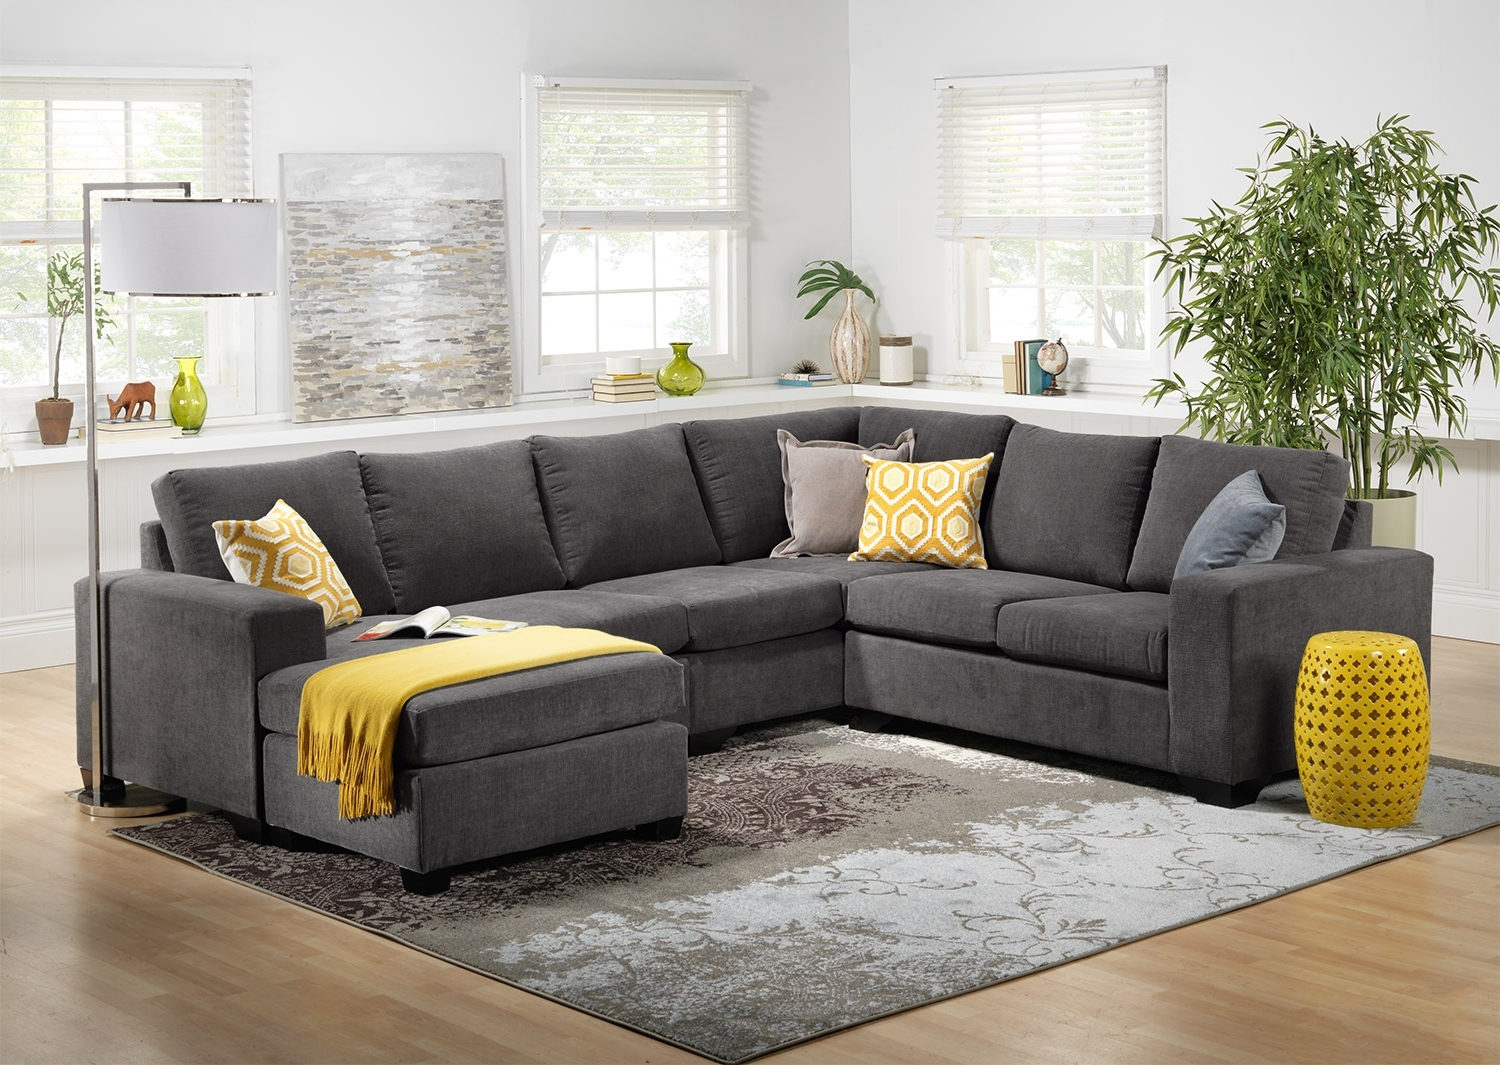 Danielle 3 Piece Sectional With Right Facing Corner Wedge – Grey Throughout Newest Scarborough Sectional Sofas (View 8 of 15)